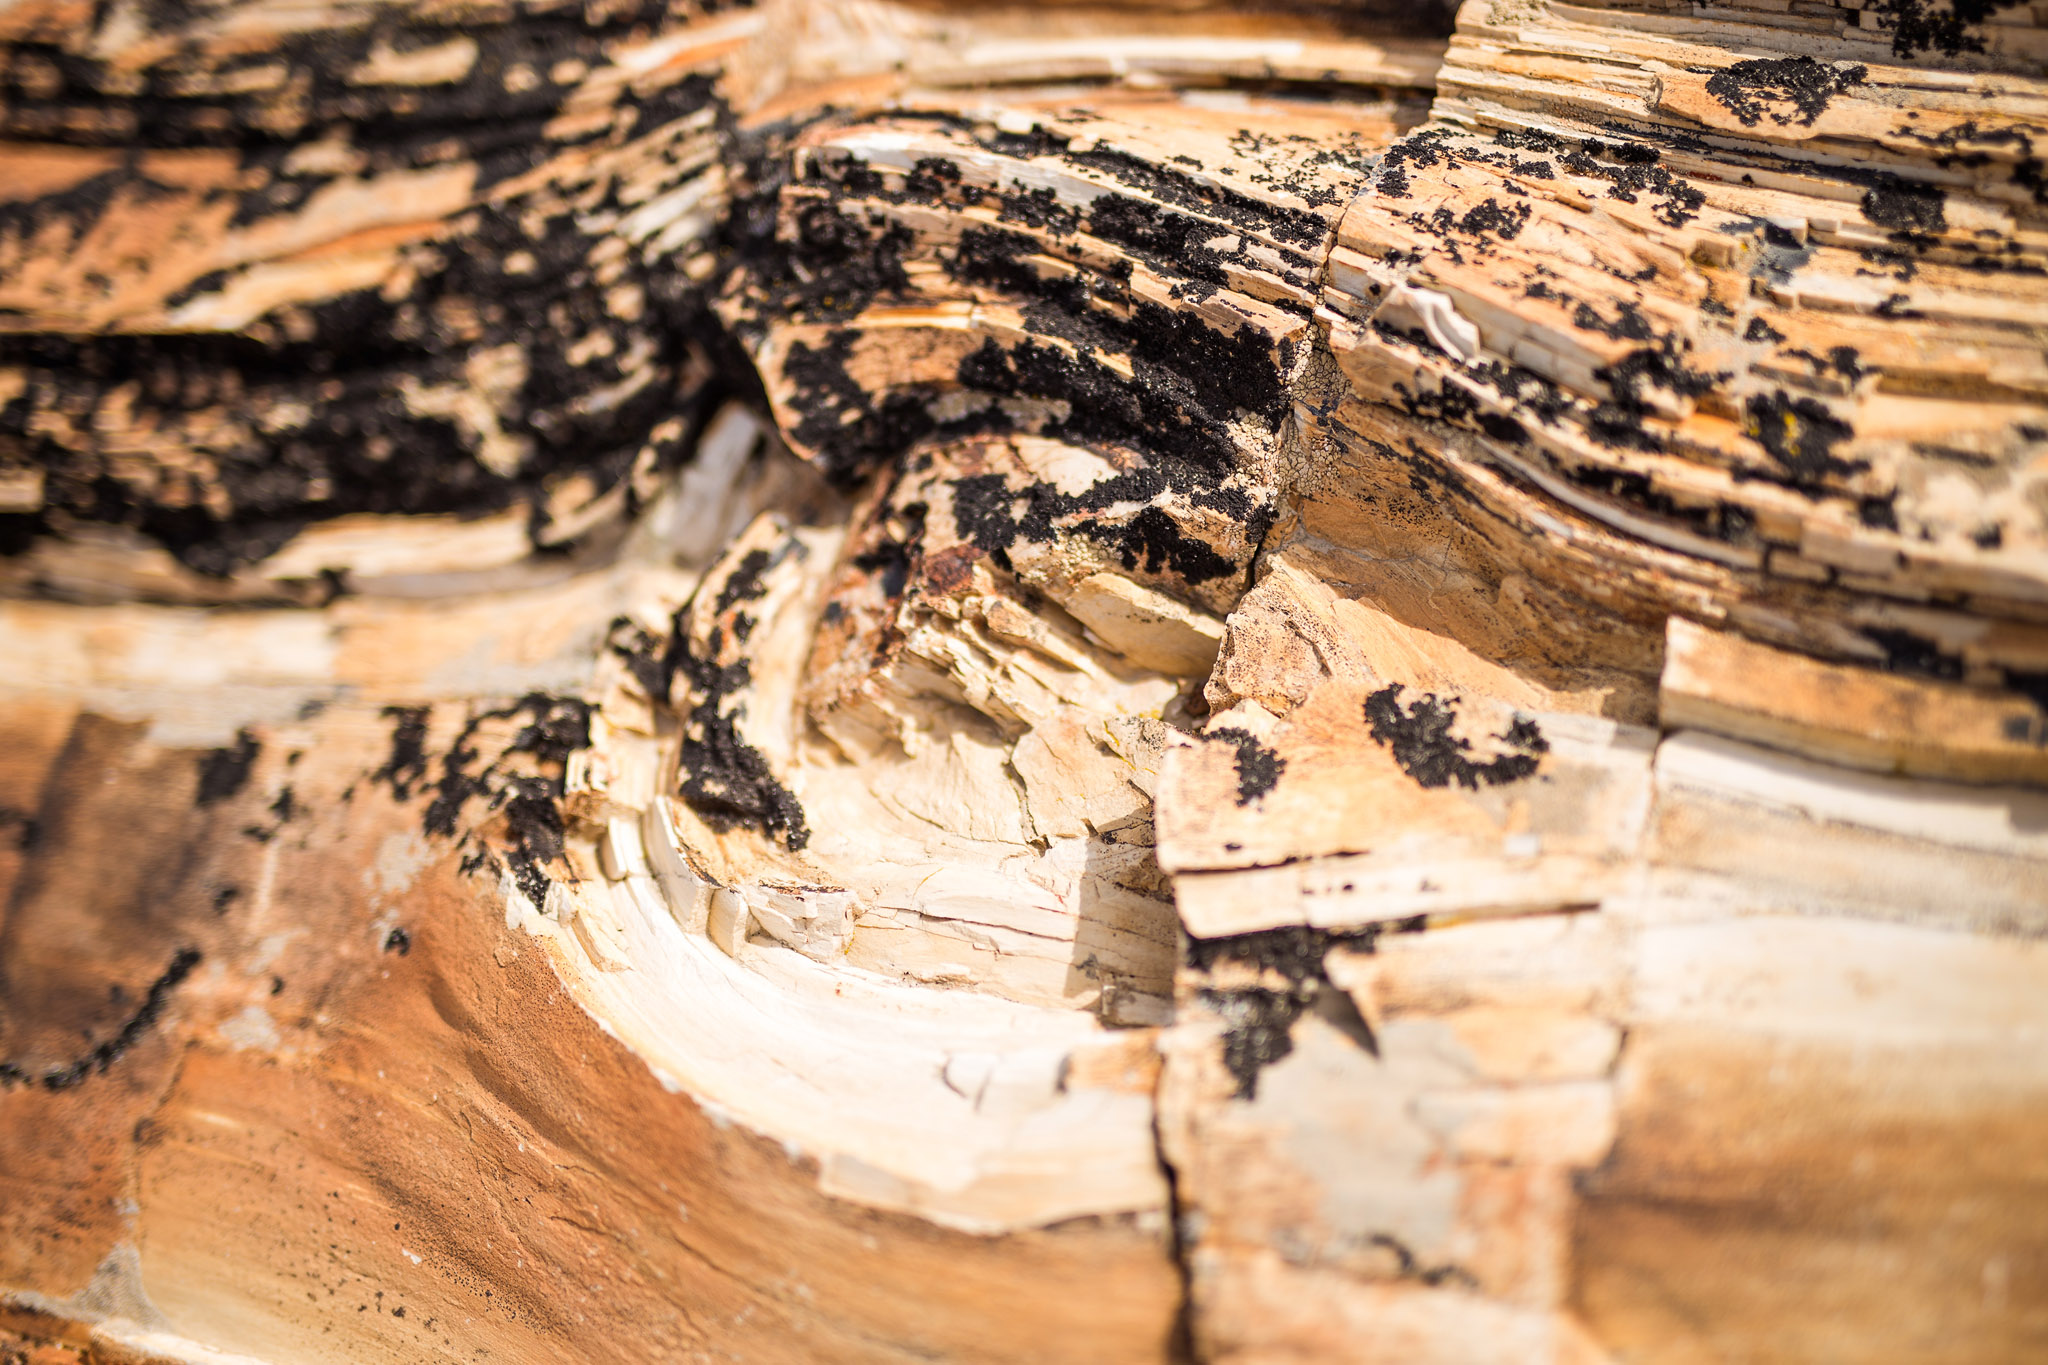 wedding-travellers-argentina-coast-petrified-forest-jaramillo-bosques-petrificados-fossil-tree-wood-structure-stone